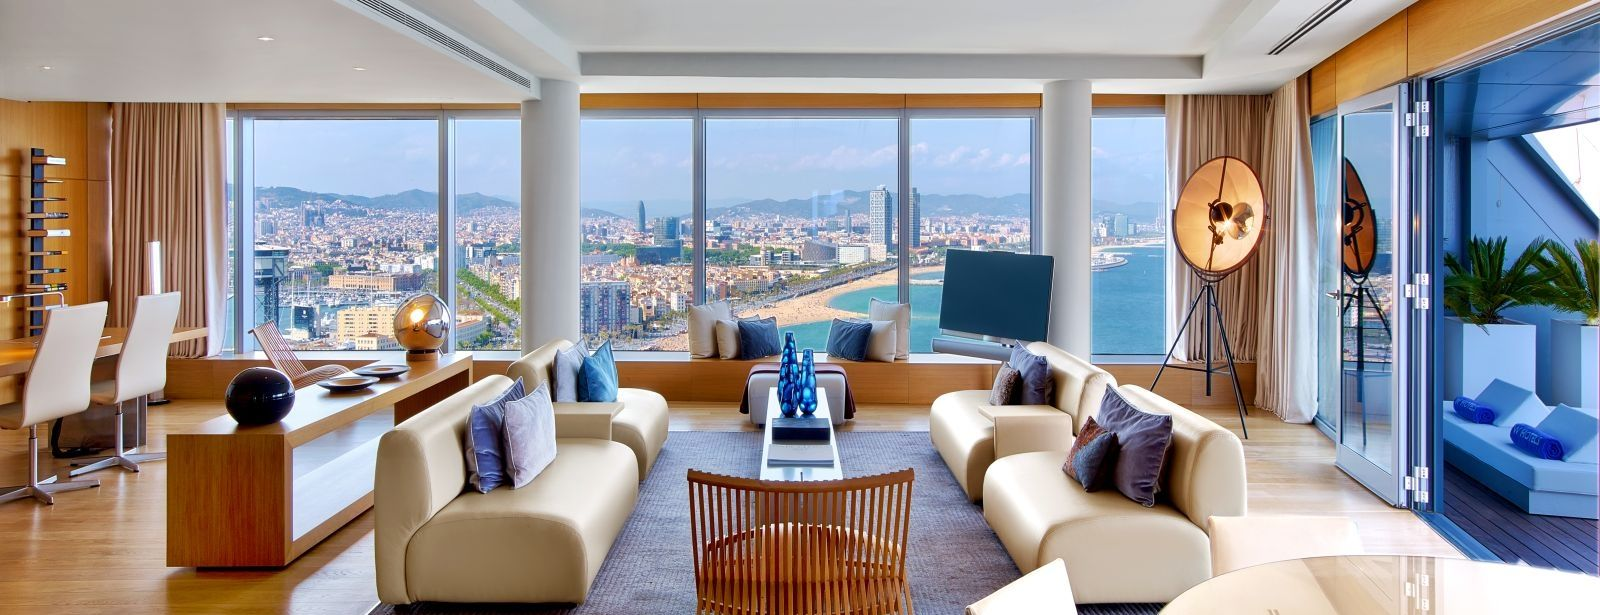 W hotels barcelona w barcelona extreme wow suite best for Design hotel w barcelona